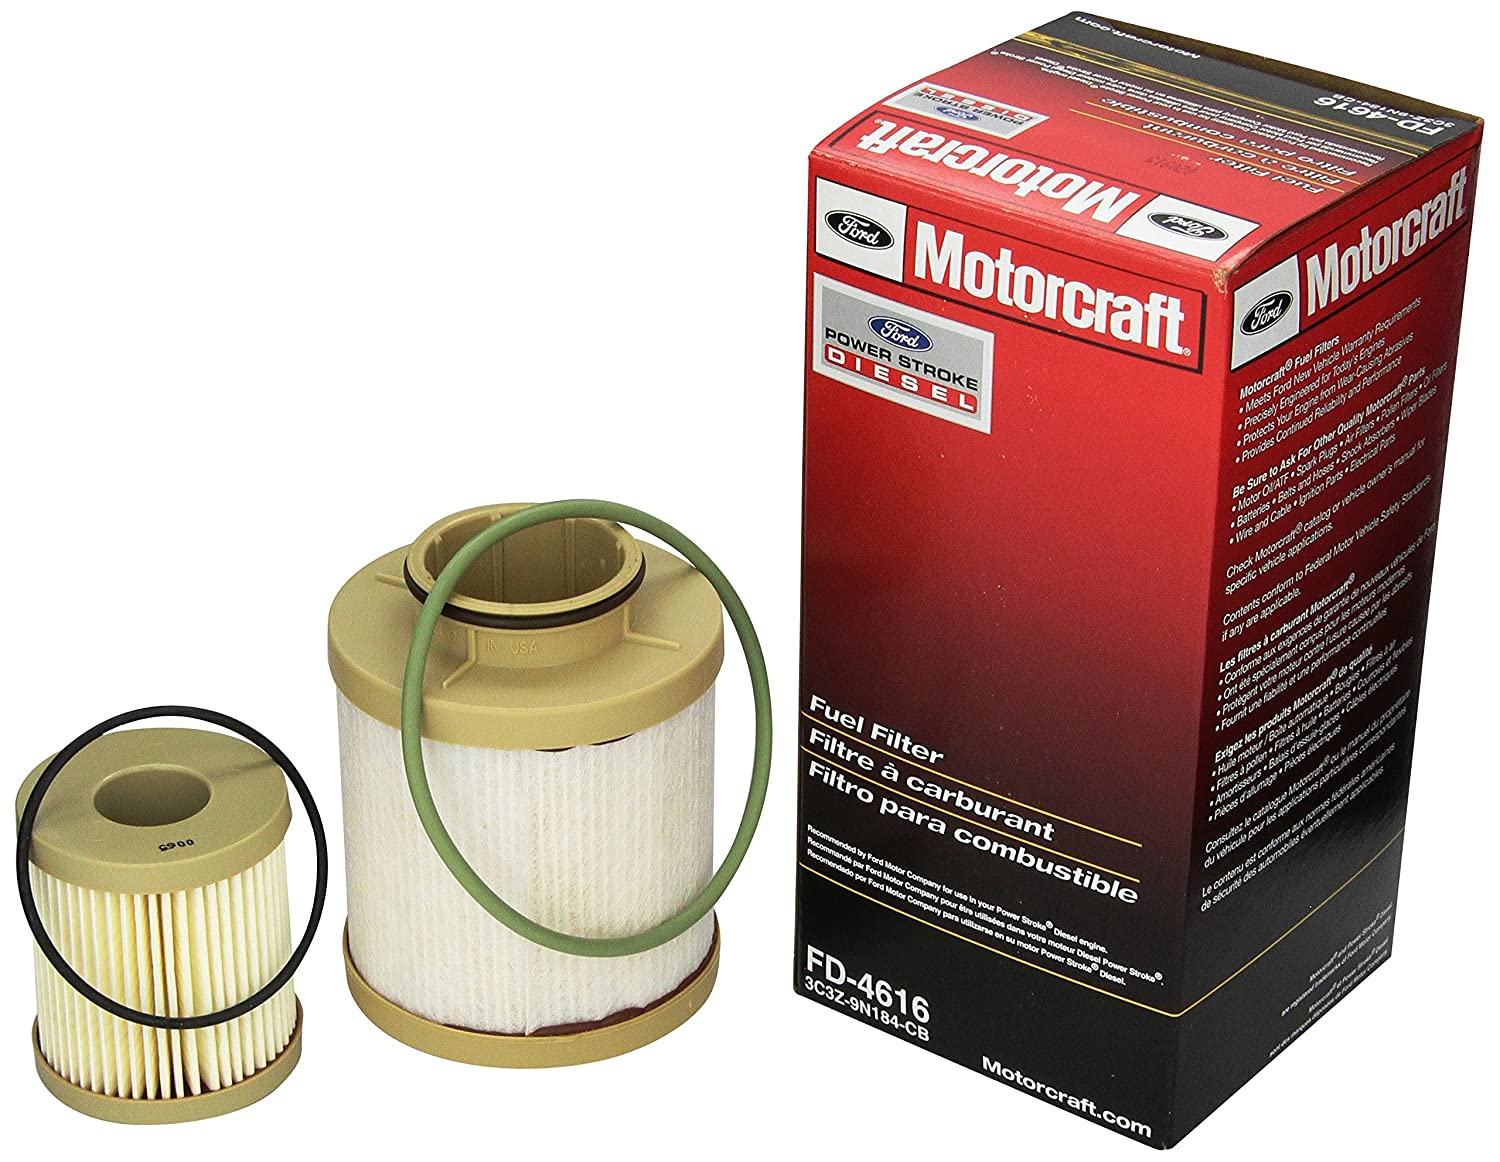 Fuel Filters Replacement Parts Automotive 1996 Mustang Filter Location Motorcraft Fd 4616